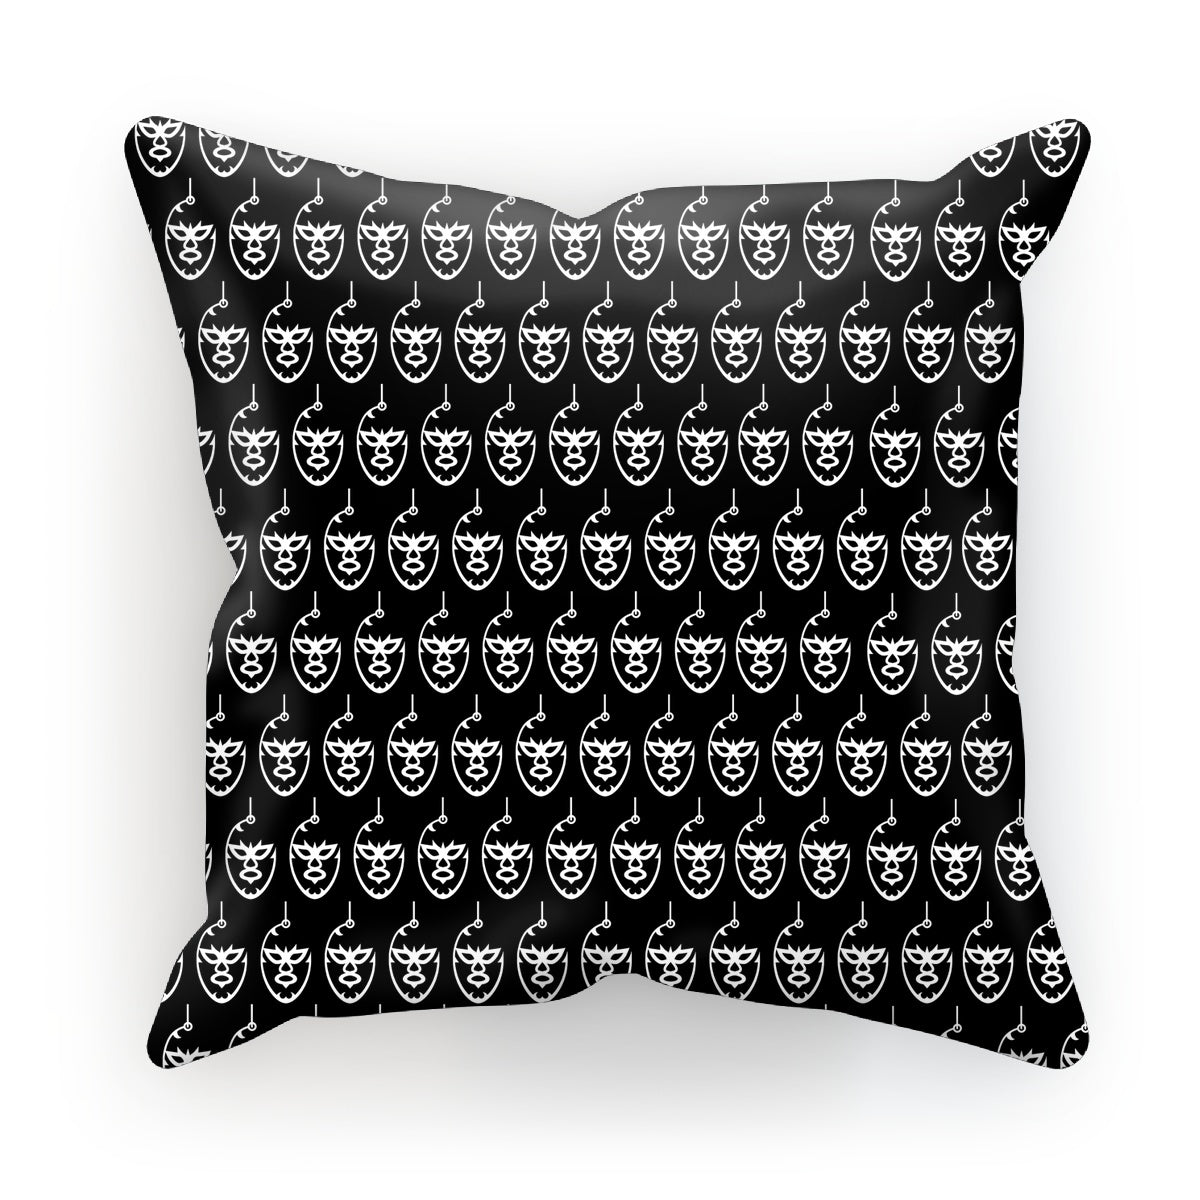 H.O.W Totally Hooked Cushion